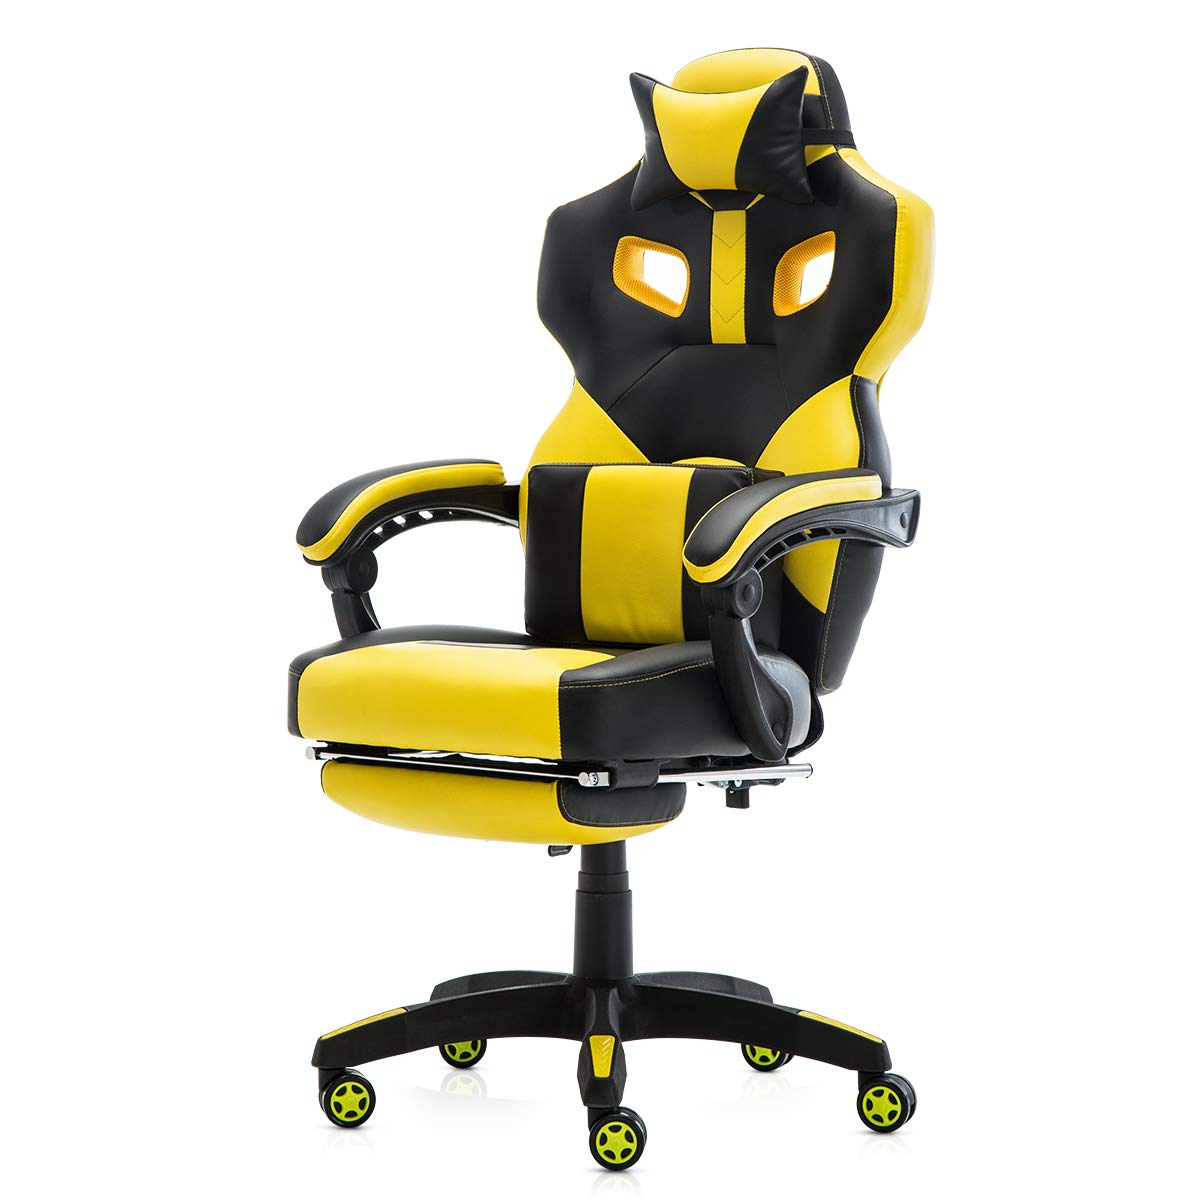 Racing Style PU Leather Gaming Chair - Ergonomic Swivel Computer, Office or Gaming Chair Desk Chair HOT (YE0) by Seatingplus